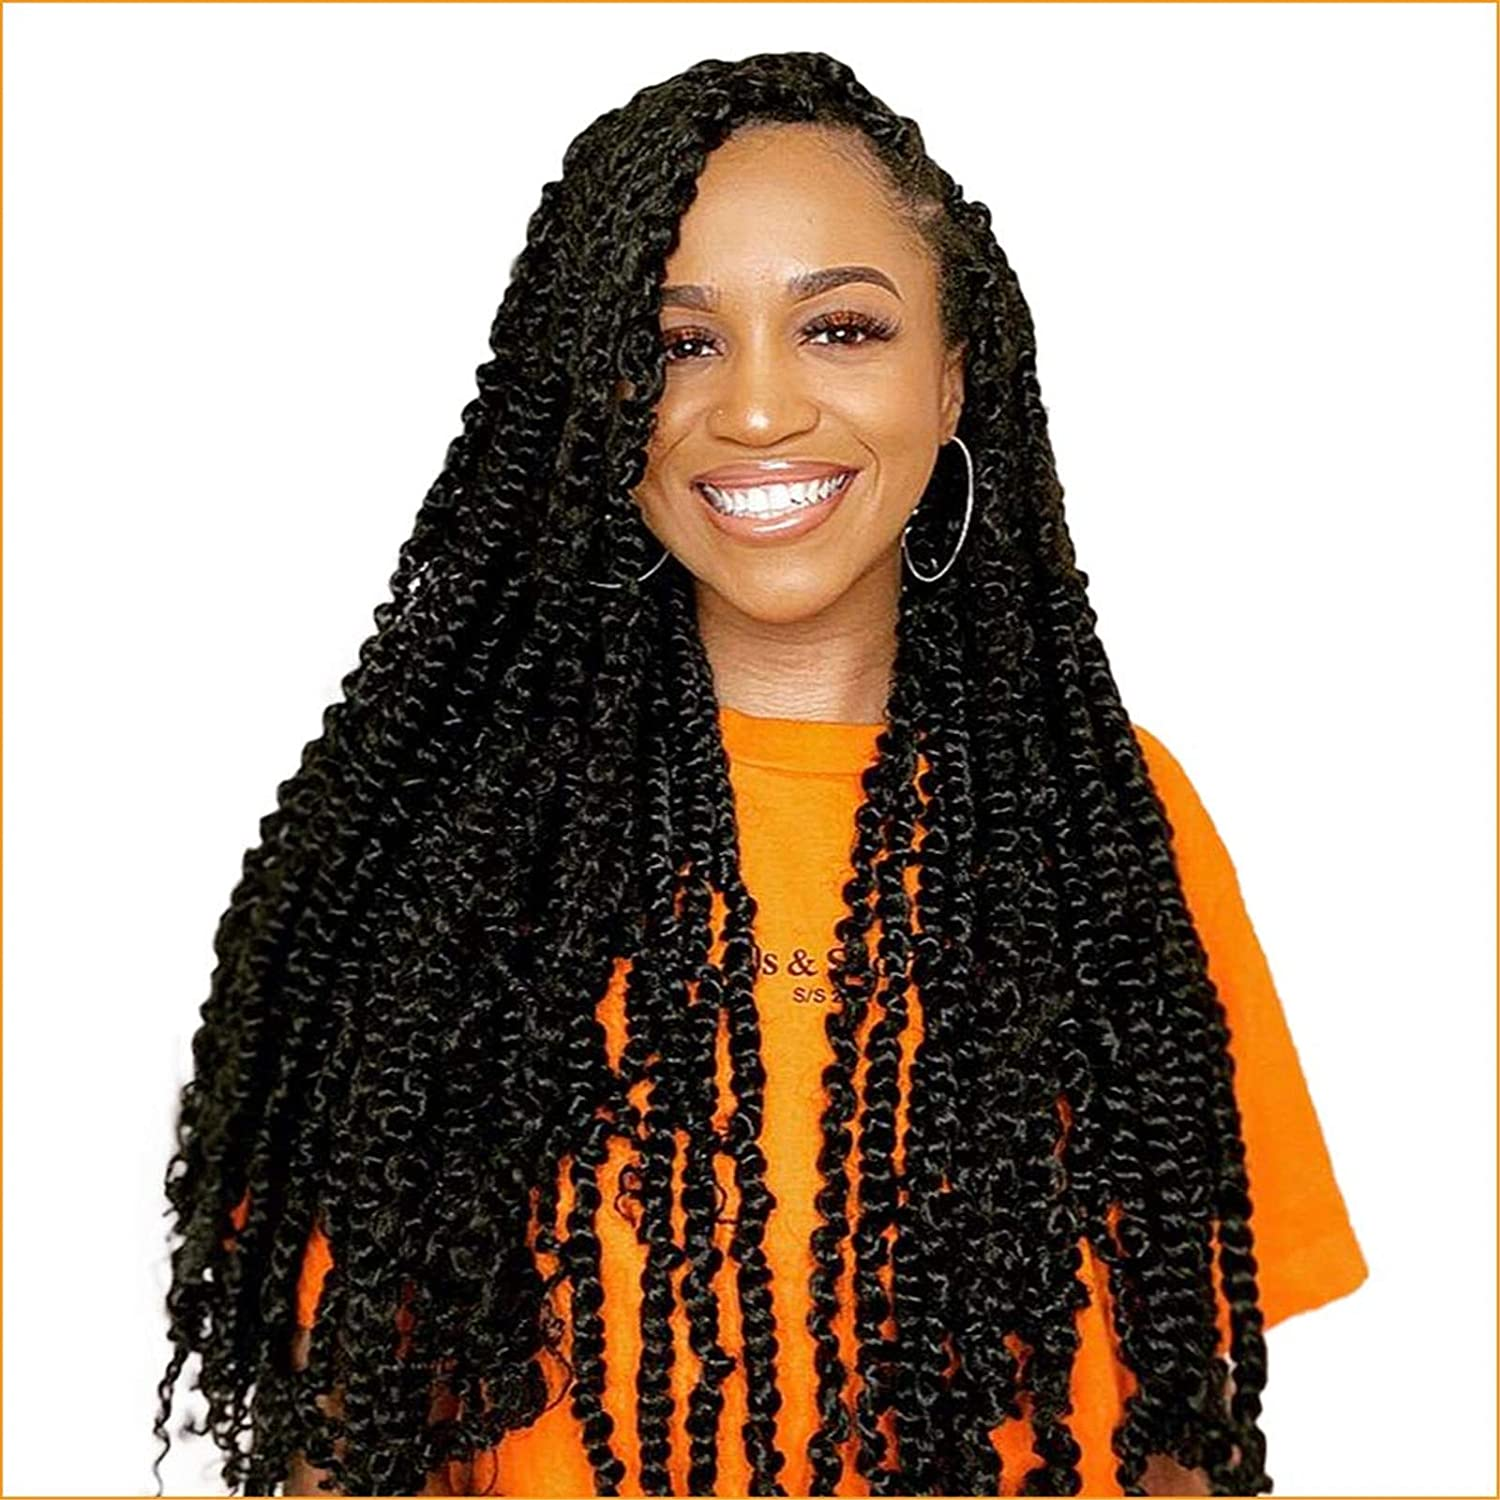 Amazon Com Toyotress Passion Twist Hair 24 Inch 7packs Natural Black Water Wave Crochet Braids Synthetic Braiding Hair Extensions 24 Inch 7packs 1b Beauty